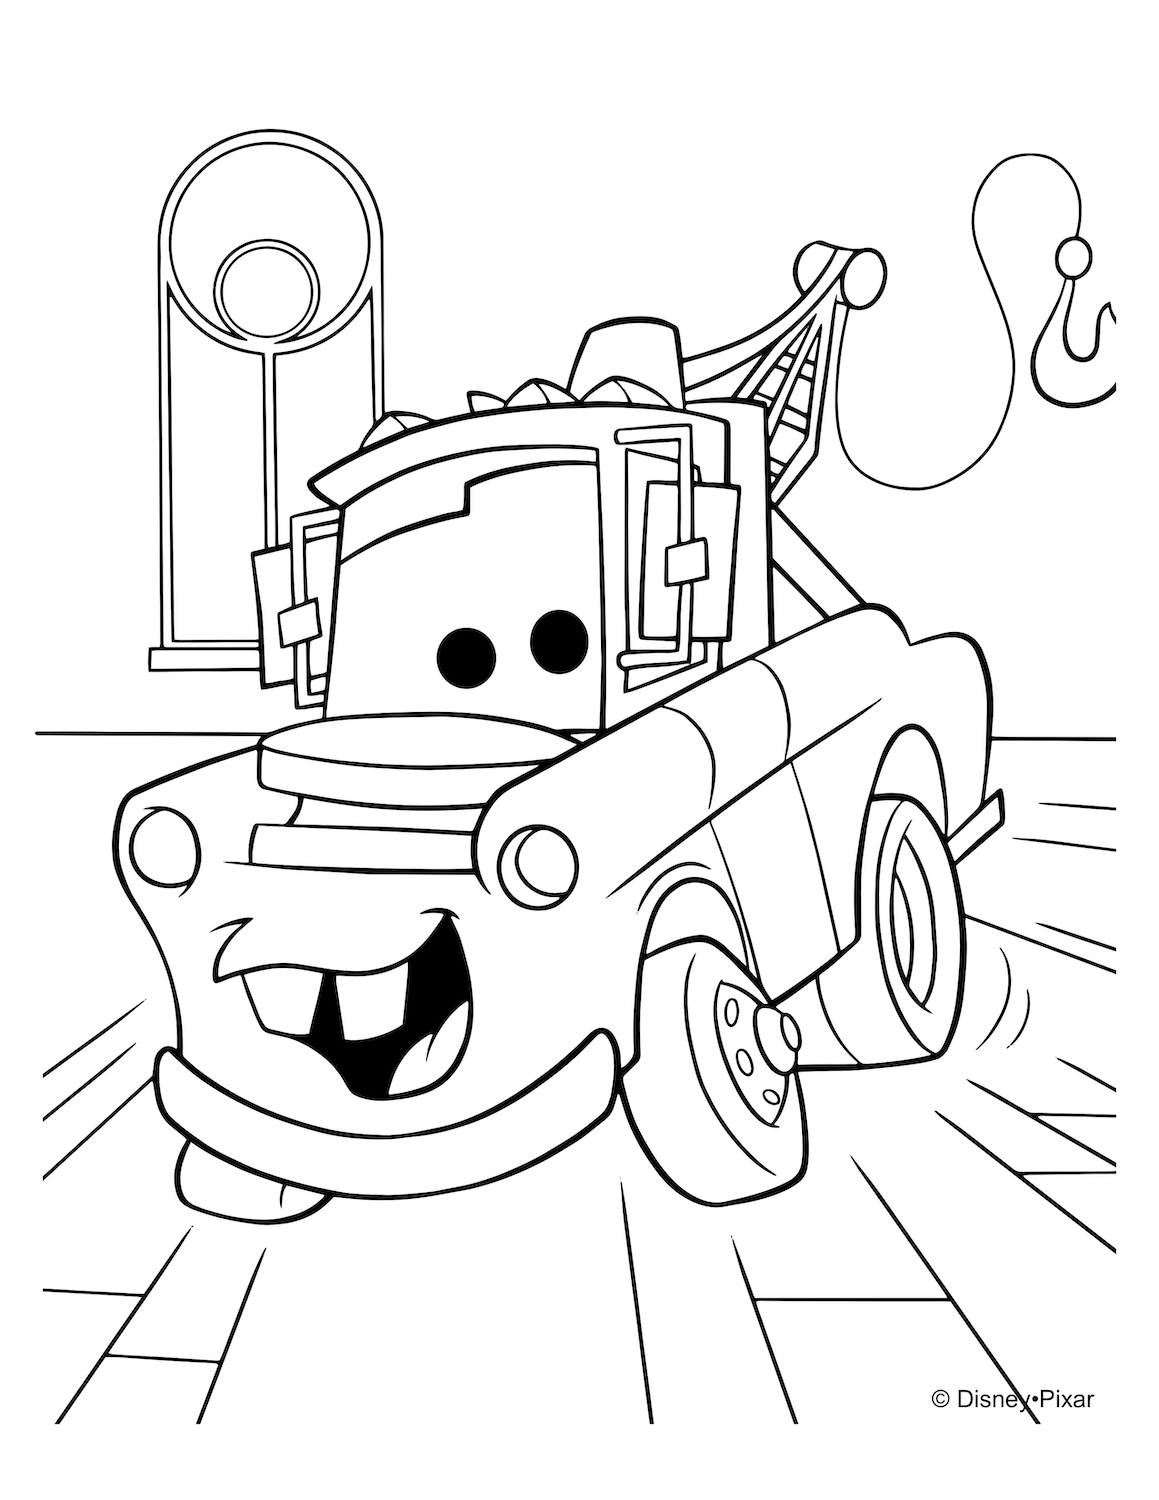 Free Disney Cars Coloring Pages Mater At Kidspartywoks Com Cars Coloring Pages Truck Coloring Pages Race Car Coloring Pages